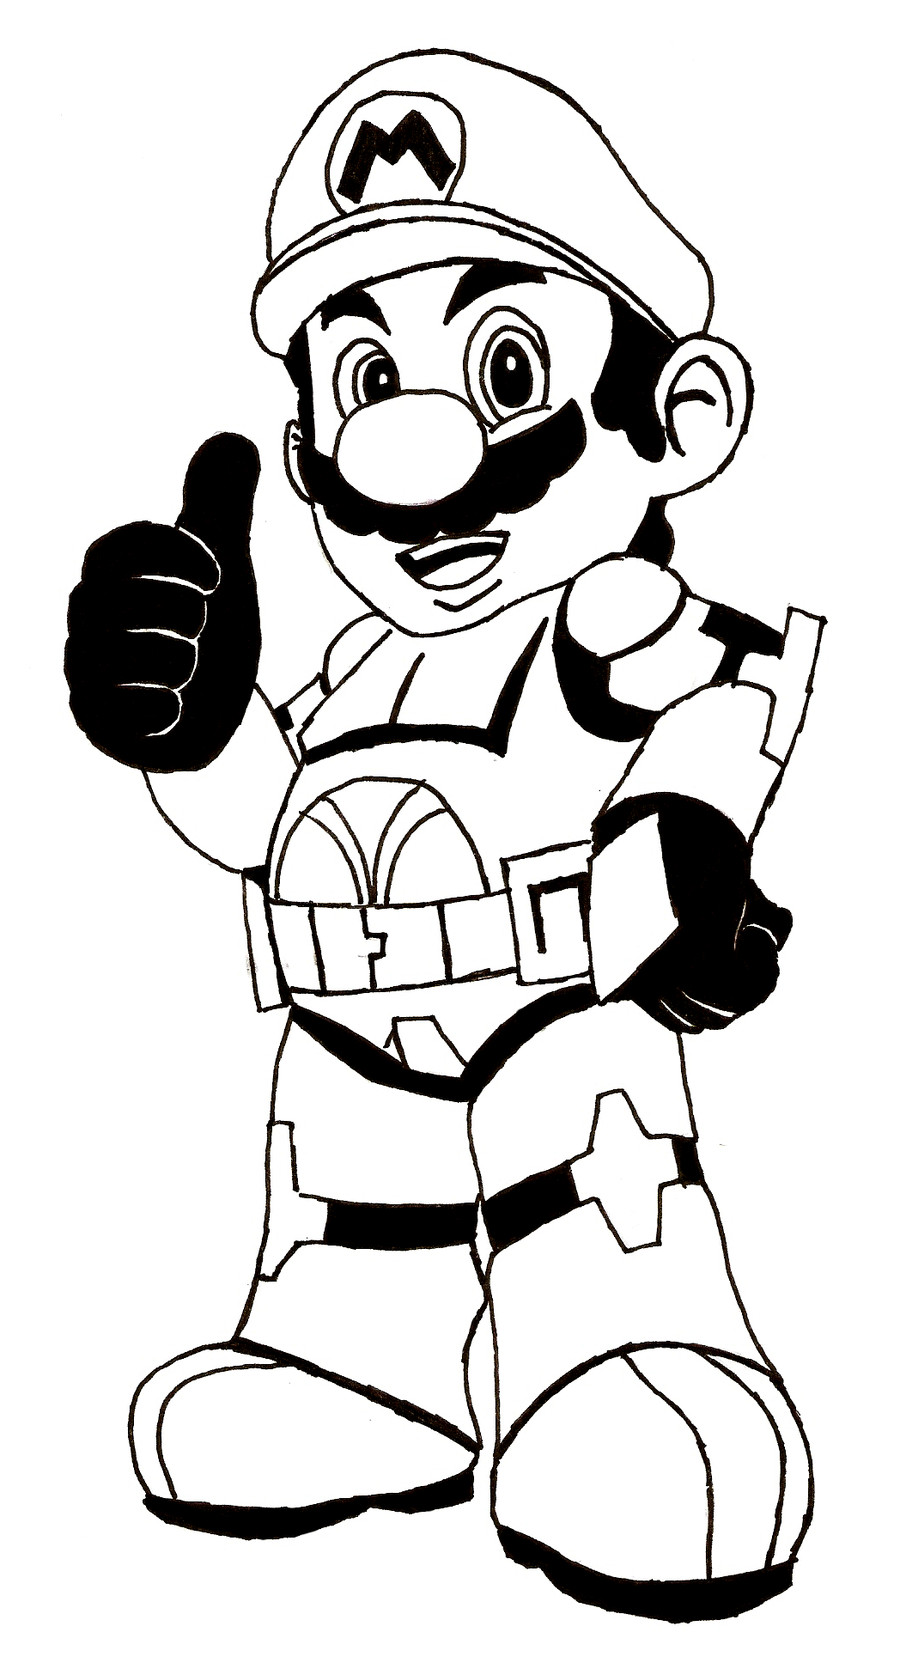 Best ideas about Mario Kart Coloring Pages For Kids Printable . Save or Pin Mario Kart 8 Coloring Pages Coloring Home Now.